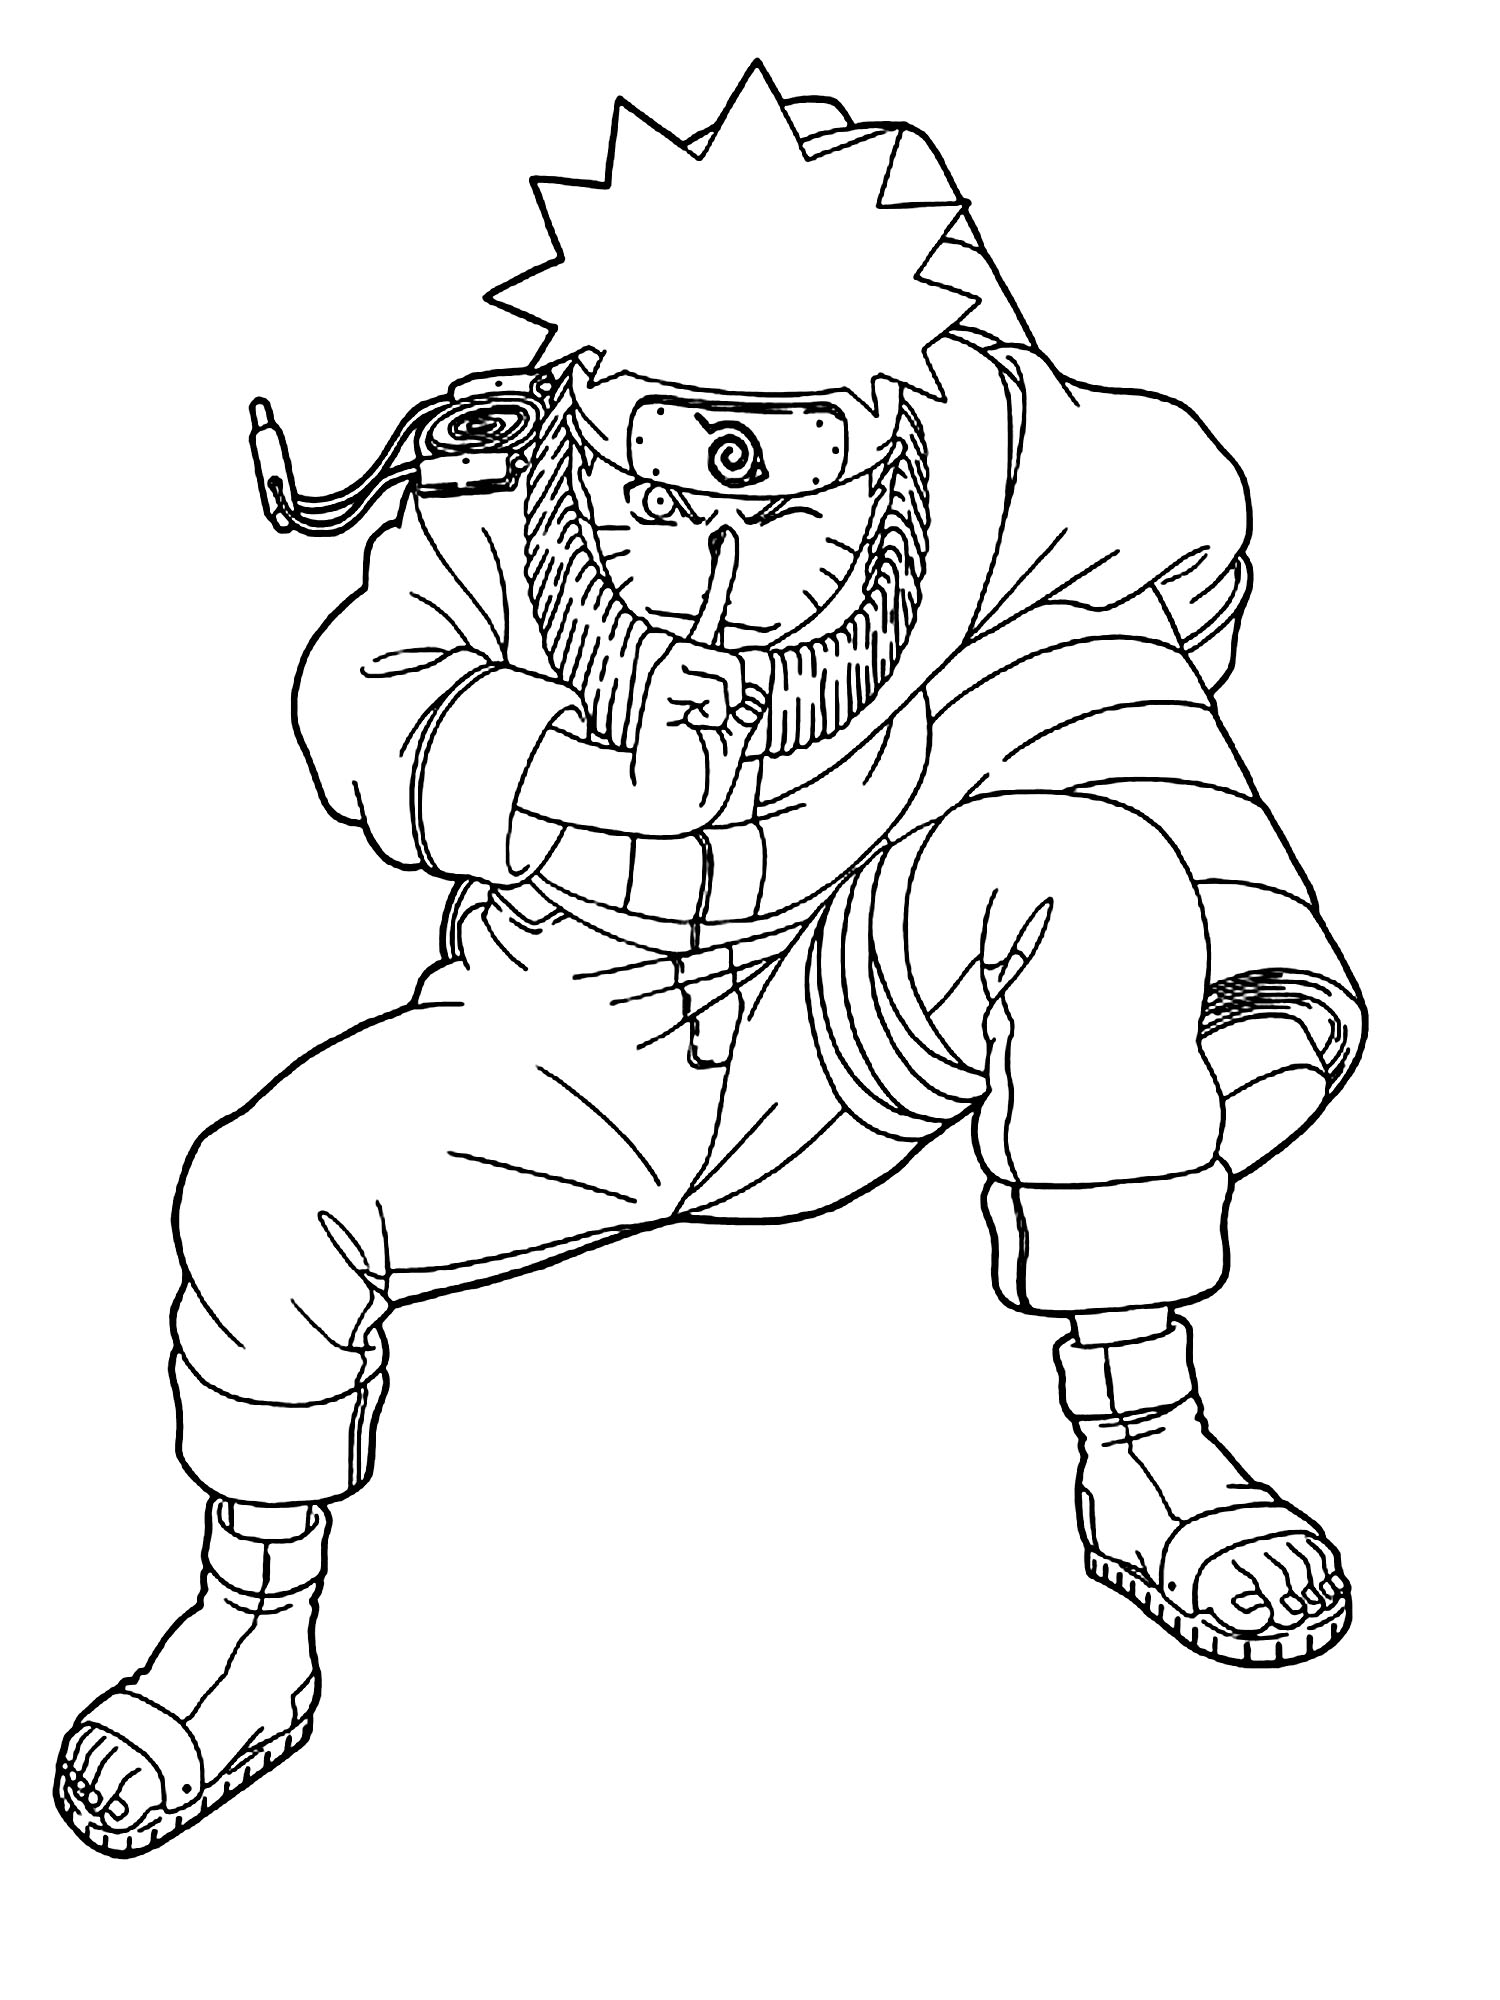 printable naruto coloring pages coloring town printable naruto pages coloring